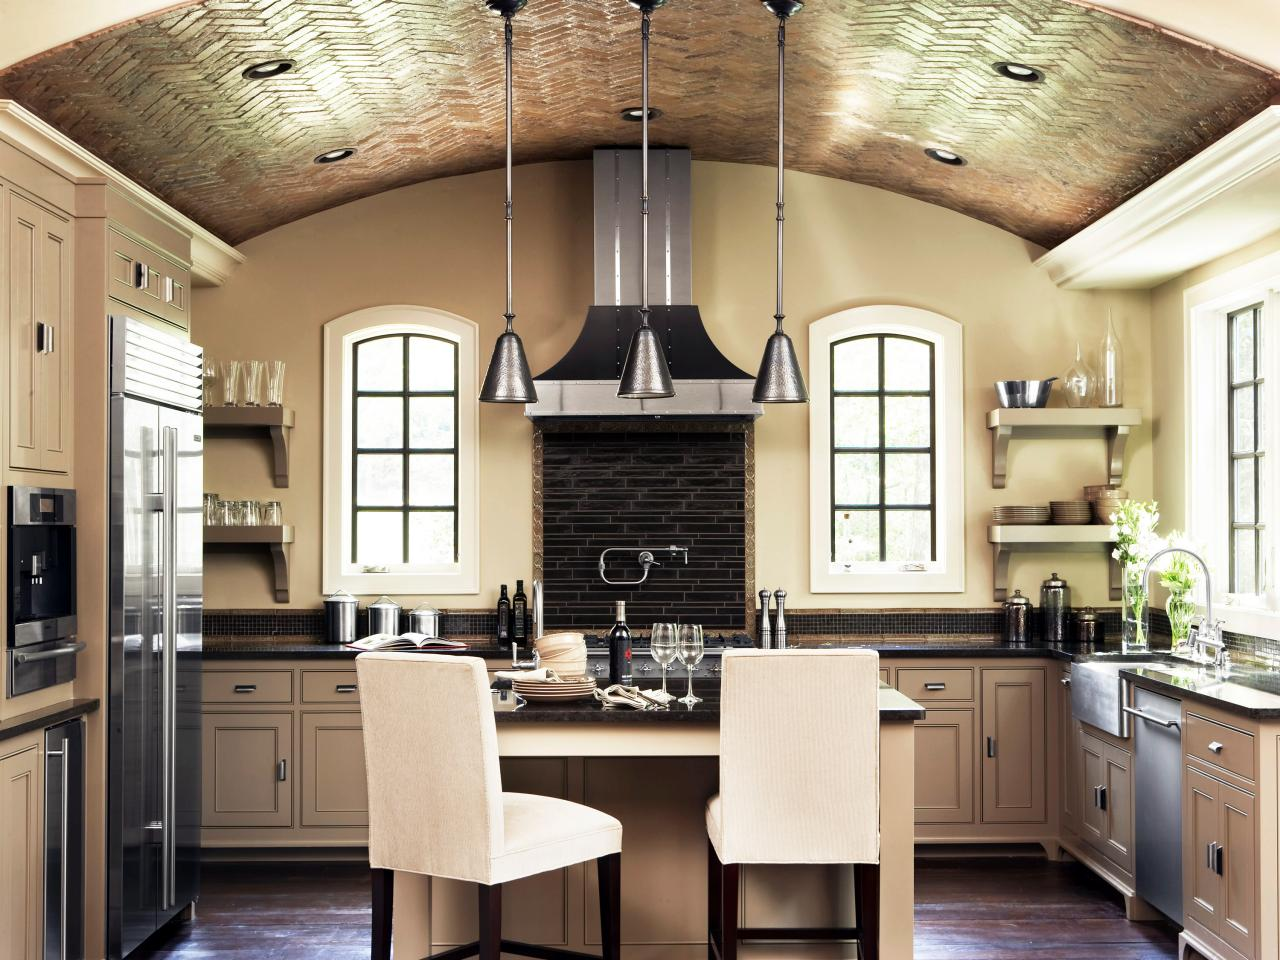 Old-World Kitchen with Barrel Ceiling